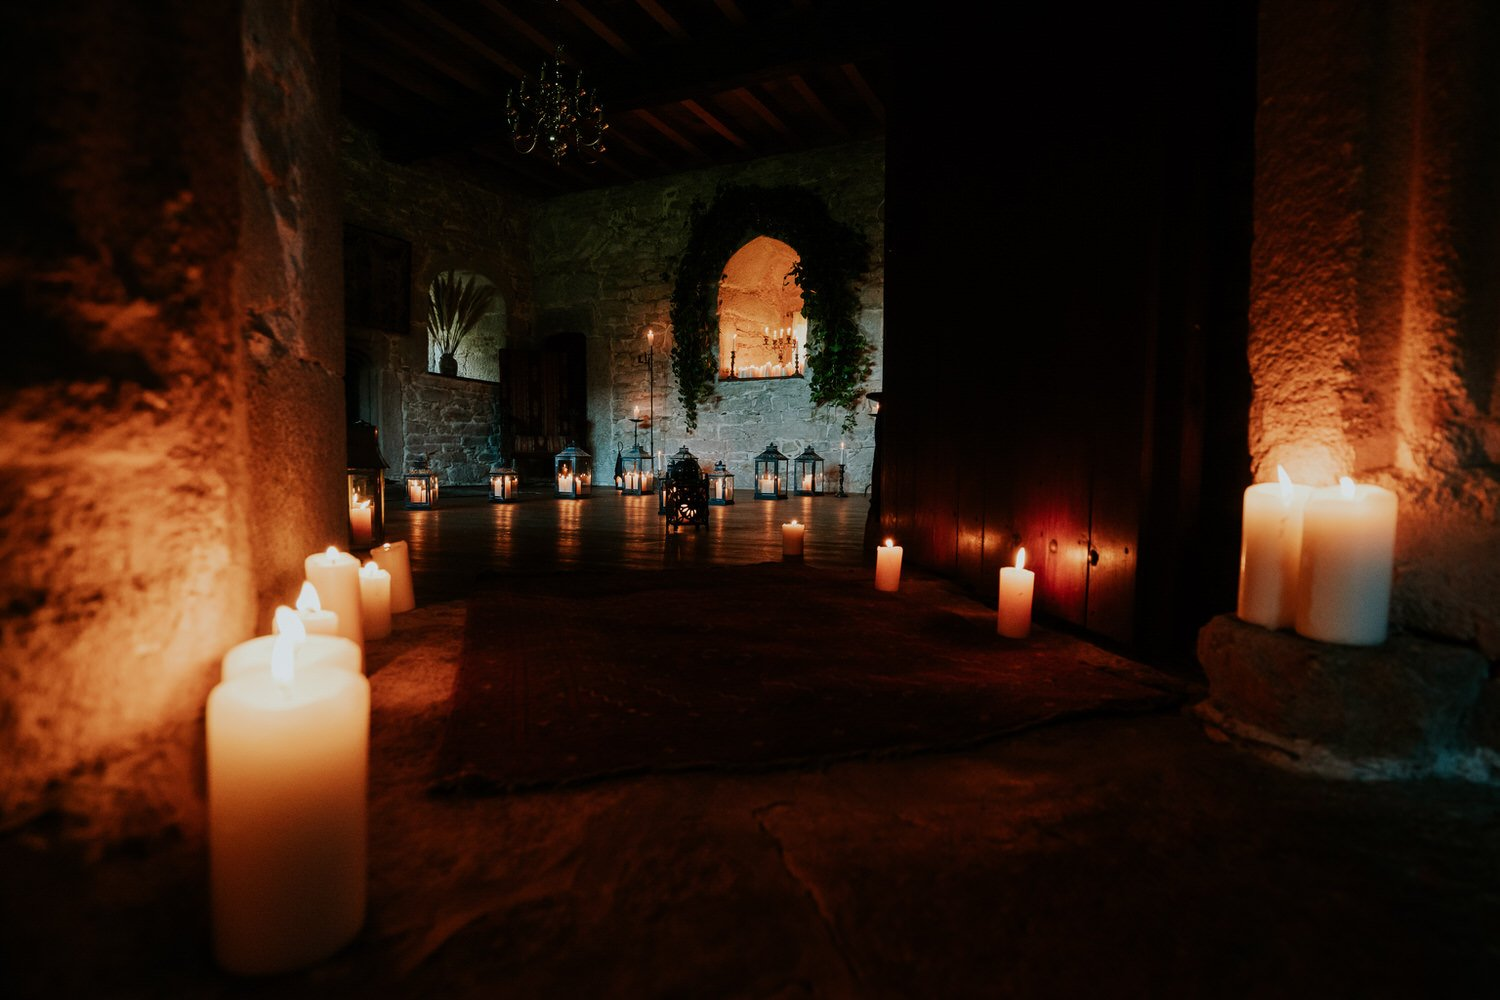 Small Wedding Venues - Candelit Roomwith golden light in a Cornish wedding castle